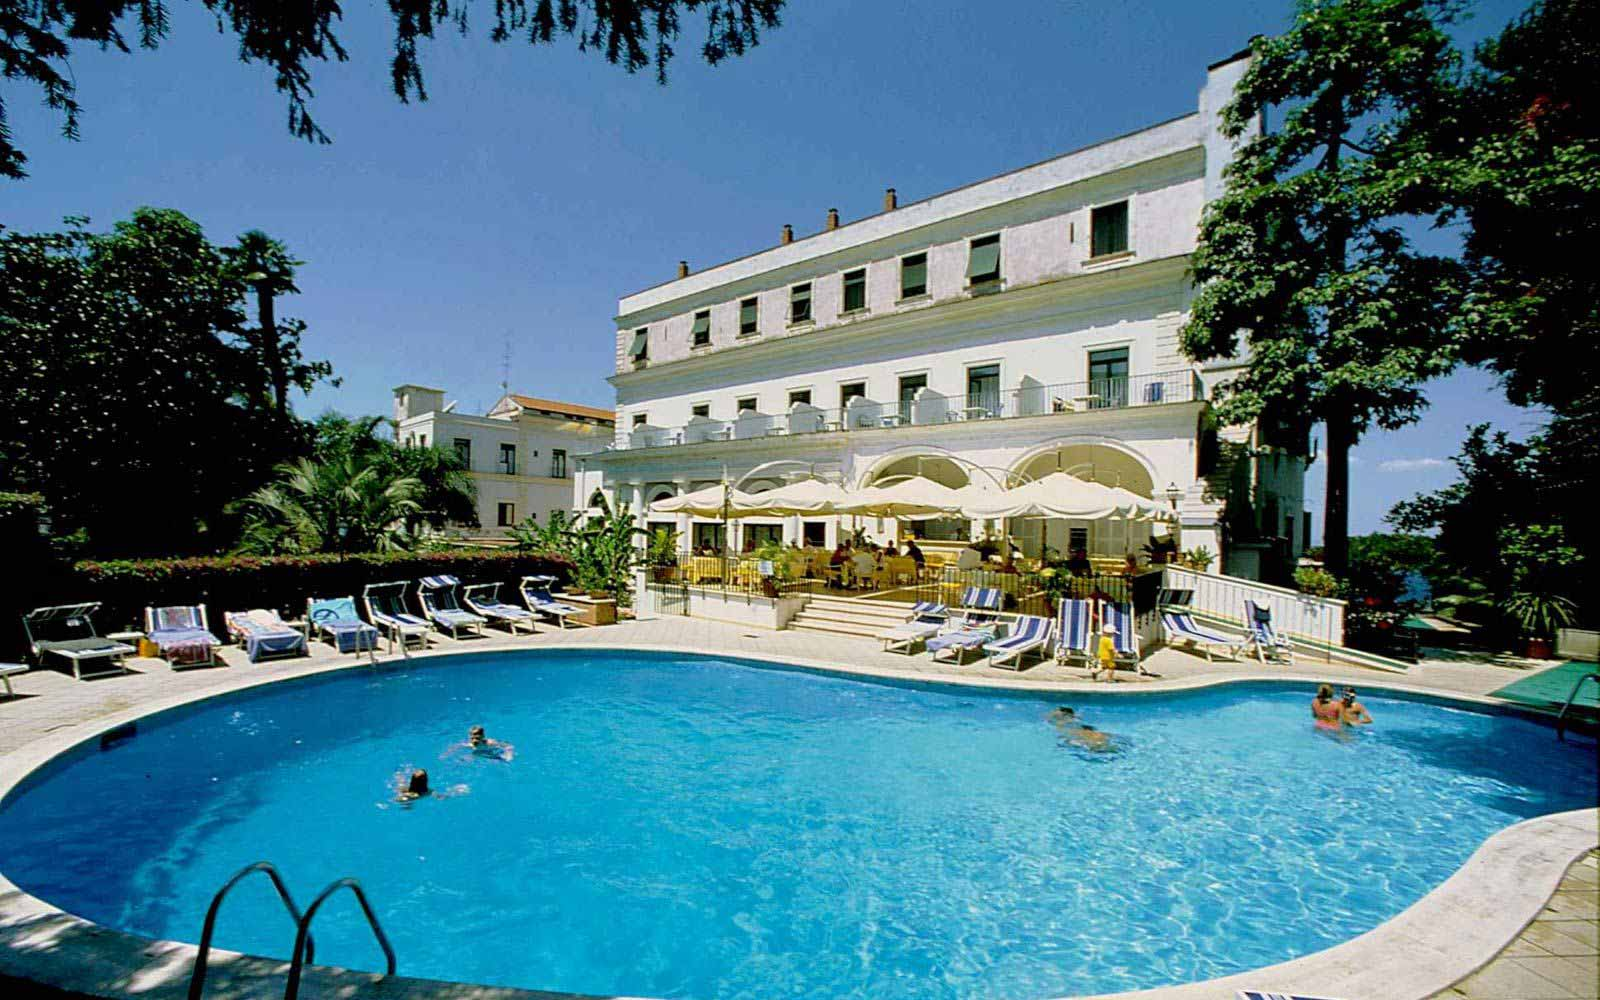 Imperial hotel tramontano sorrento neapolitan riviera - Hotels in verona with swimming pool ...